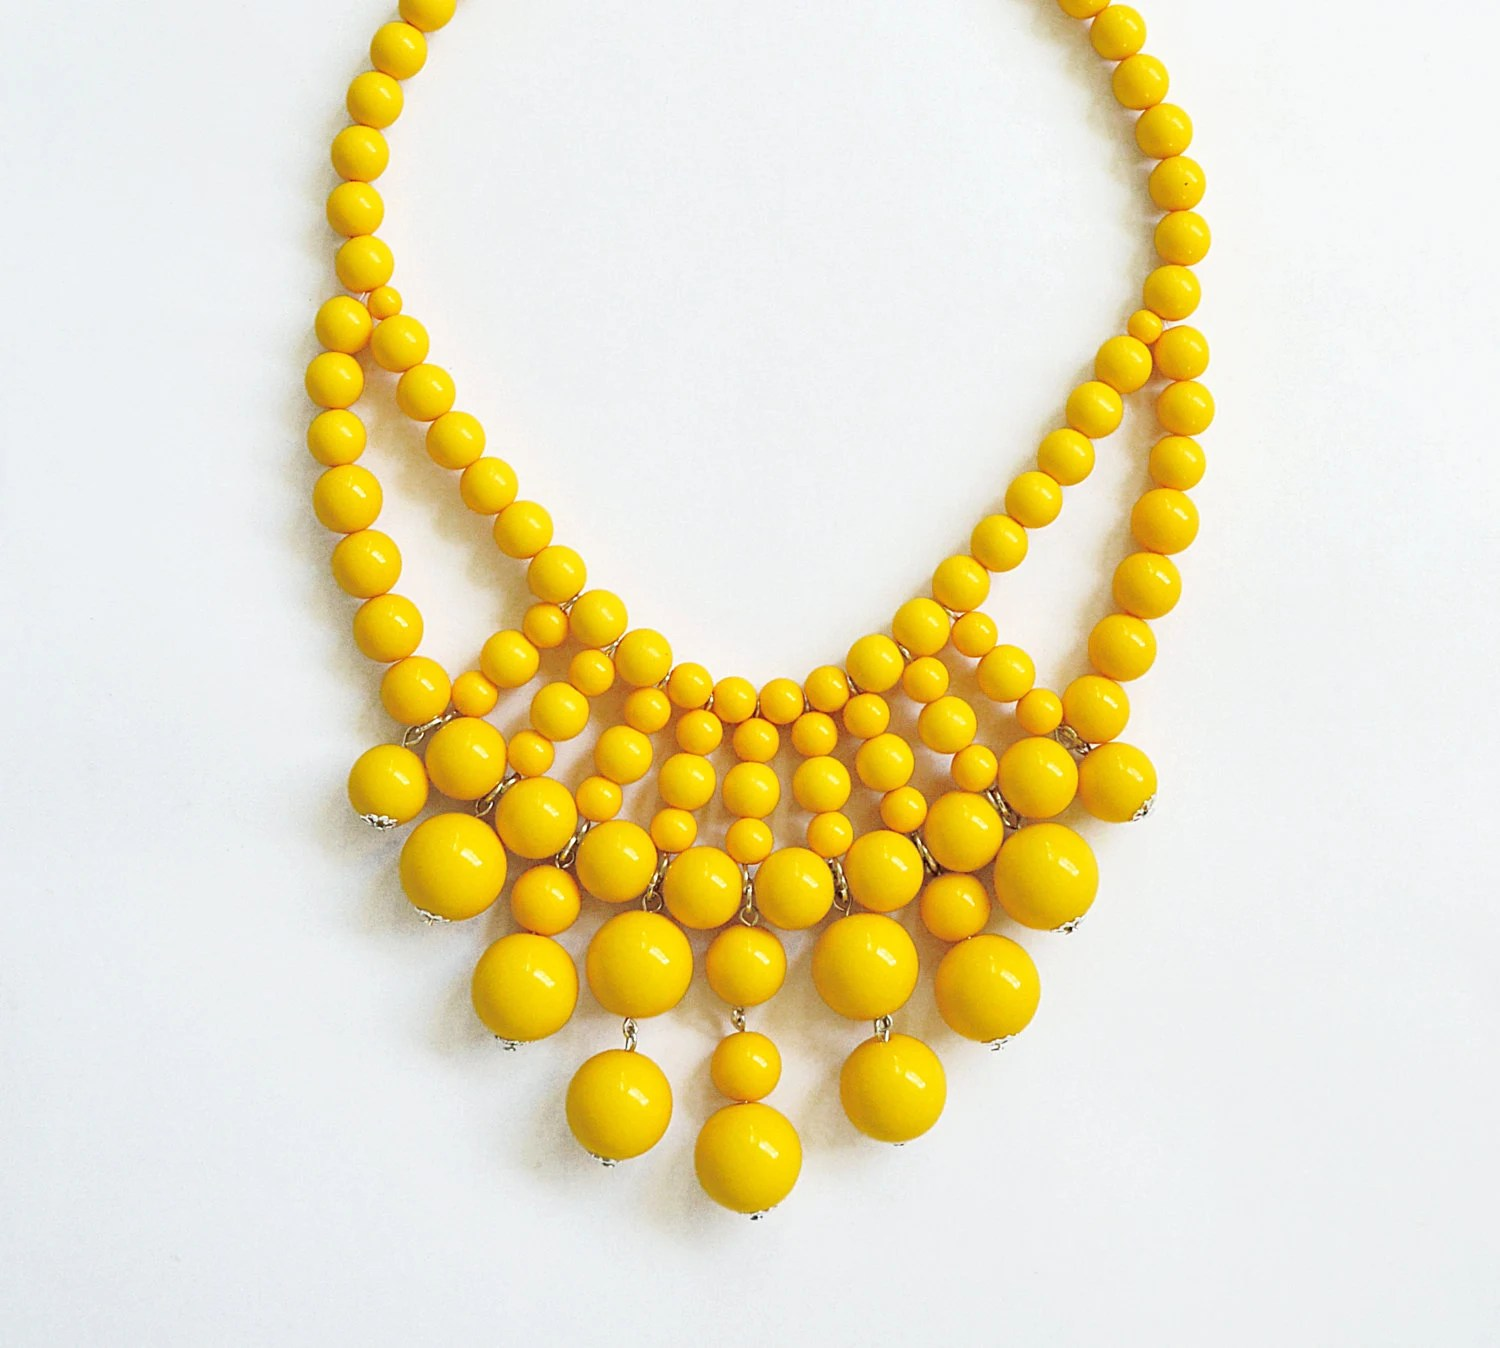 Bauble Necklace - Beaded Necklace - Yellow Necklace - Bib - Statement Necklace - Chunky Necklace - Anthropologie Inspired - Ship from US - ShamelesslySparkly